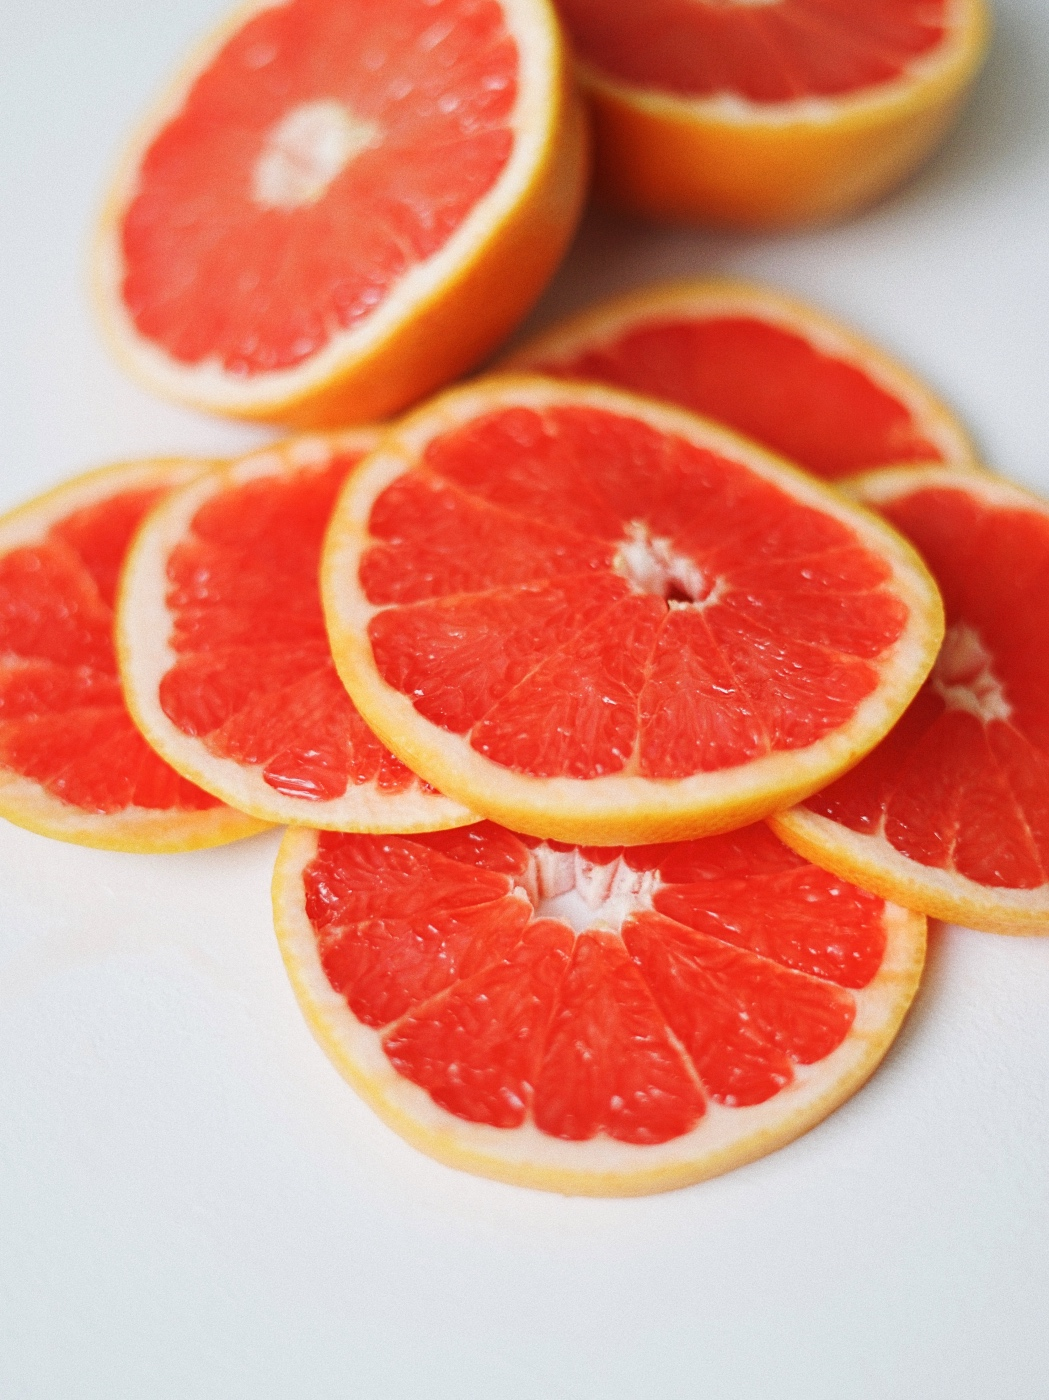 sliced grapefruit to make infused water recipe with mint and citrus